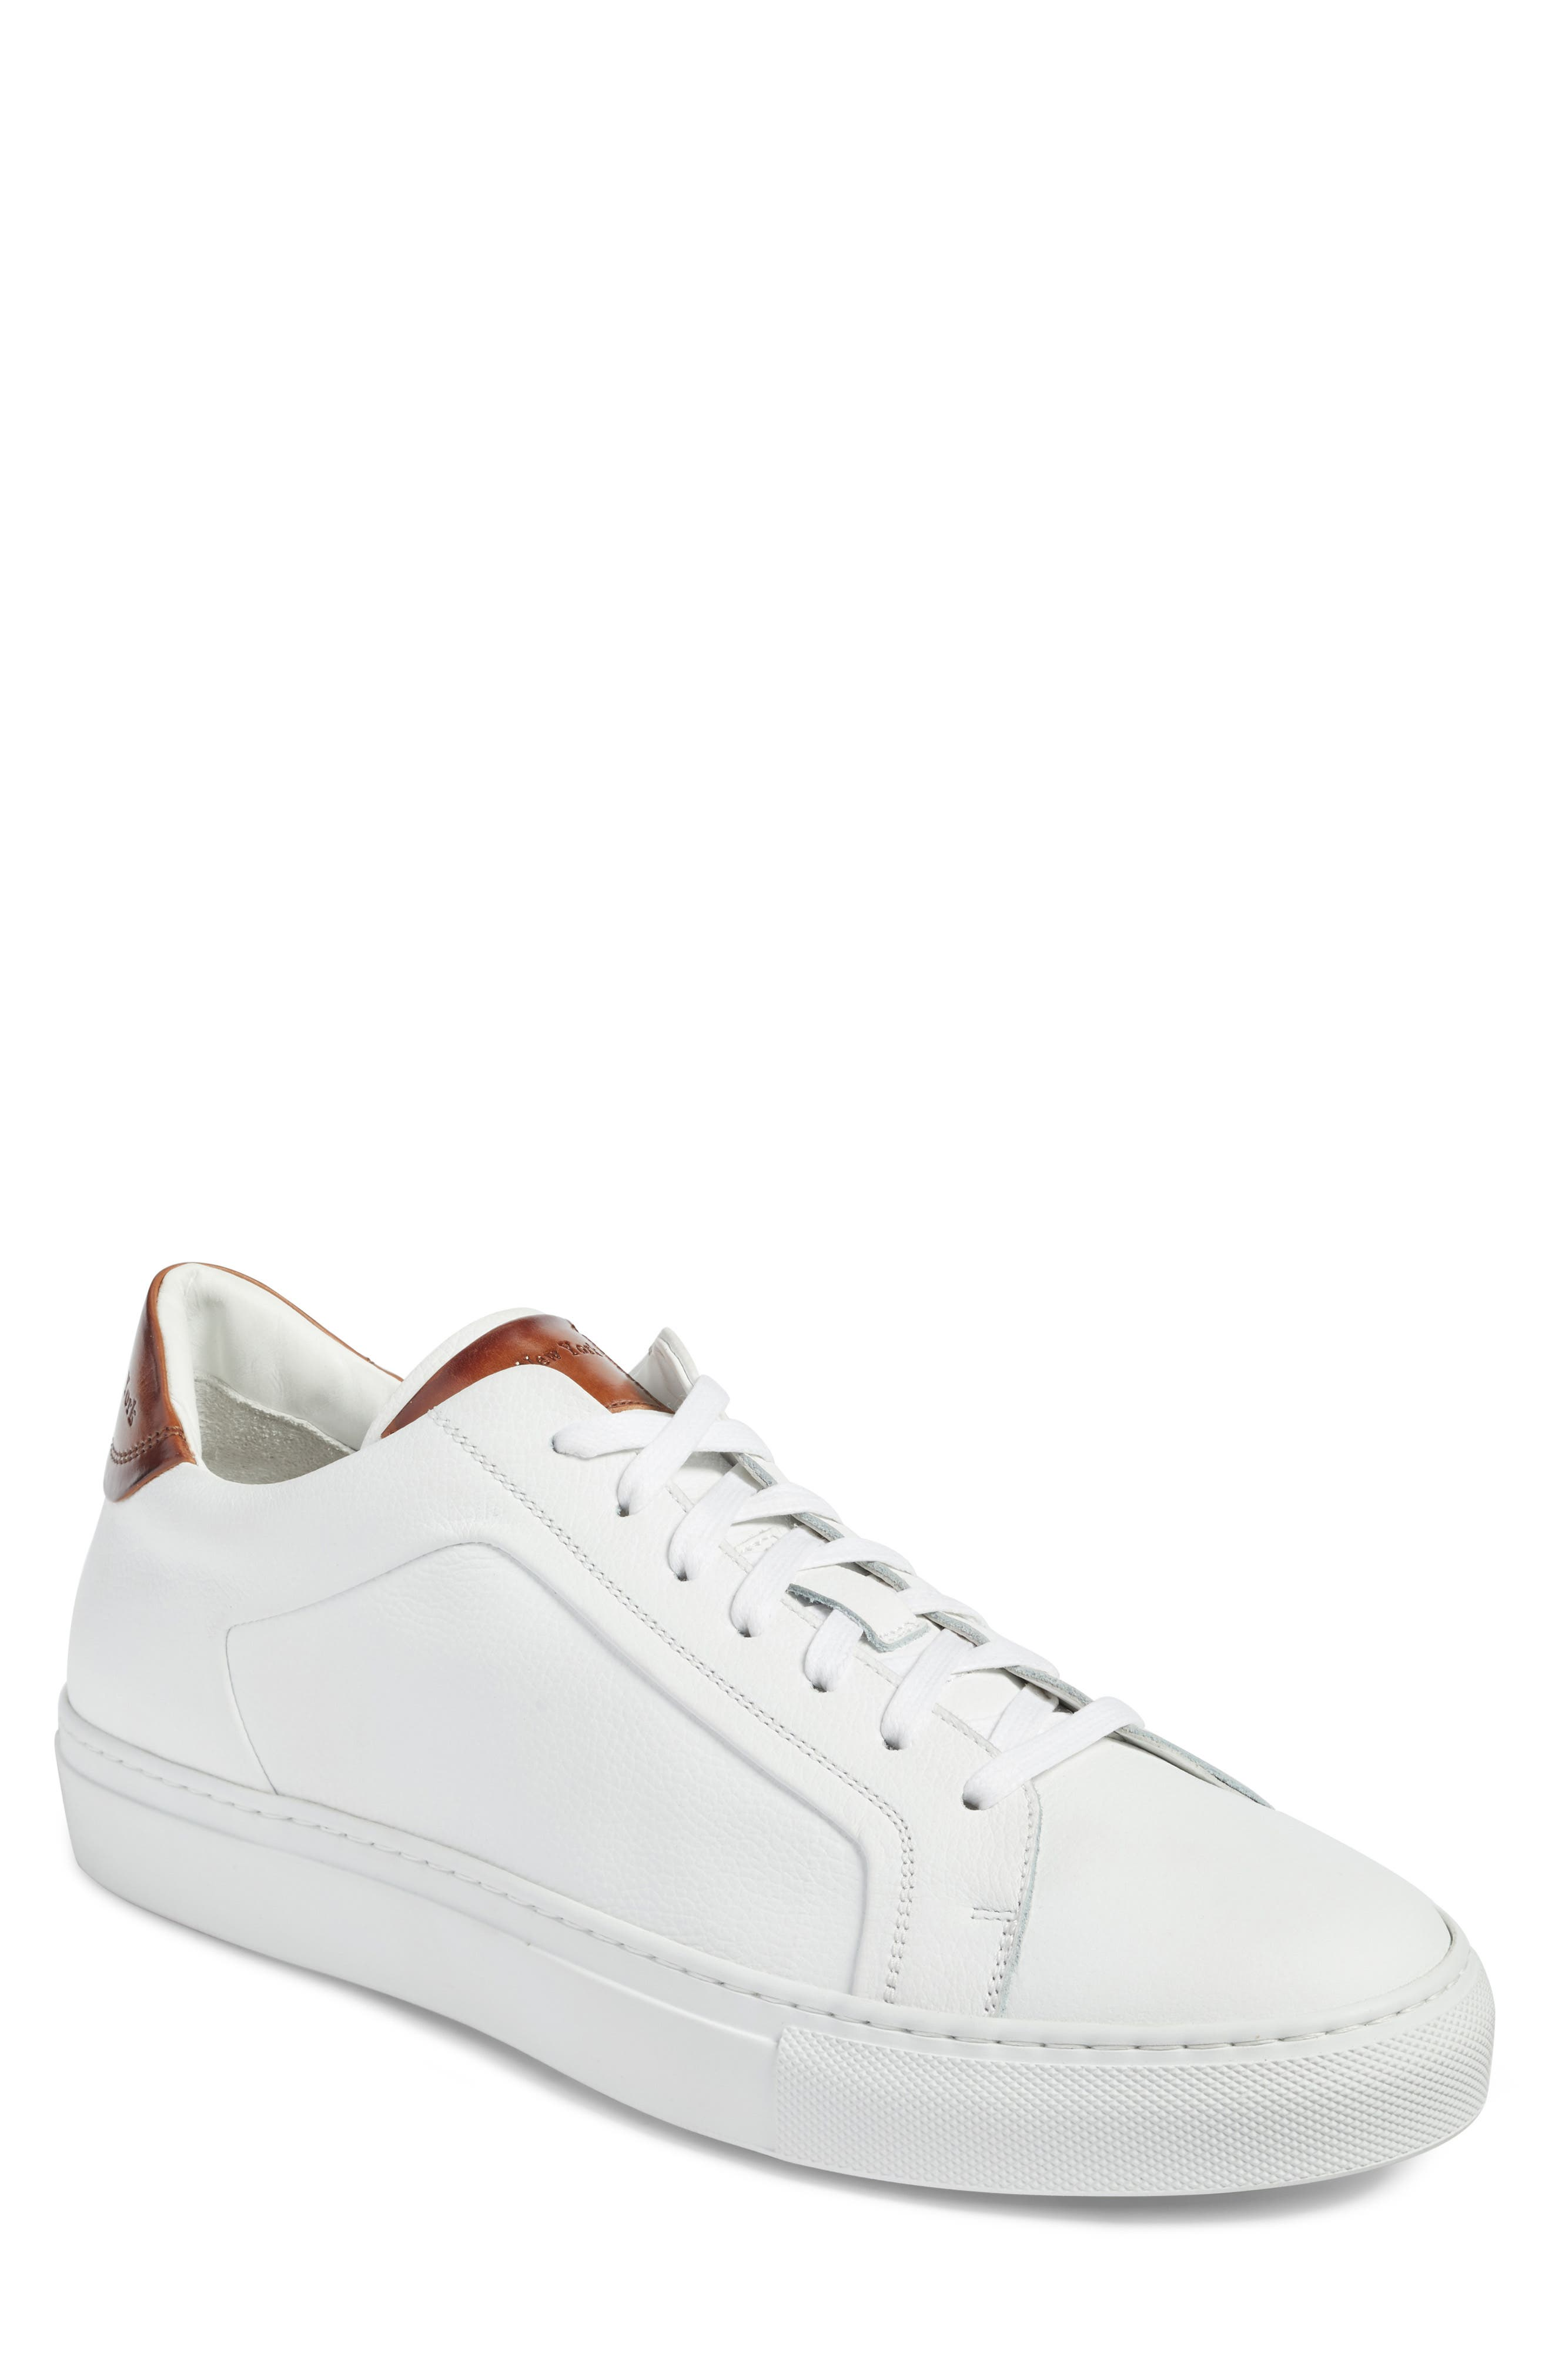 TO BOOT NEW YORK, Carlin Sneaker, Main thumbnail 1, color, WHITE/ TAN LEATHER